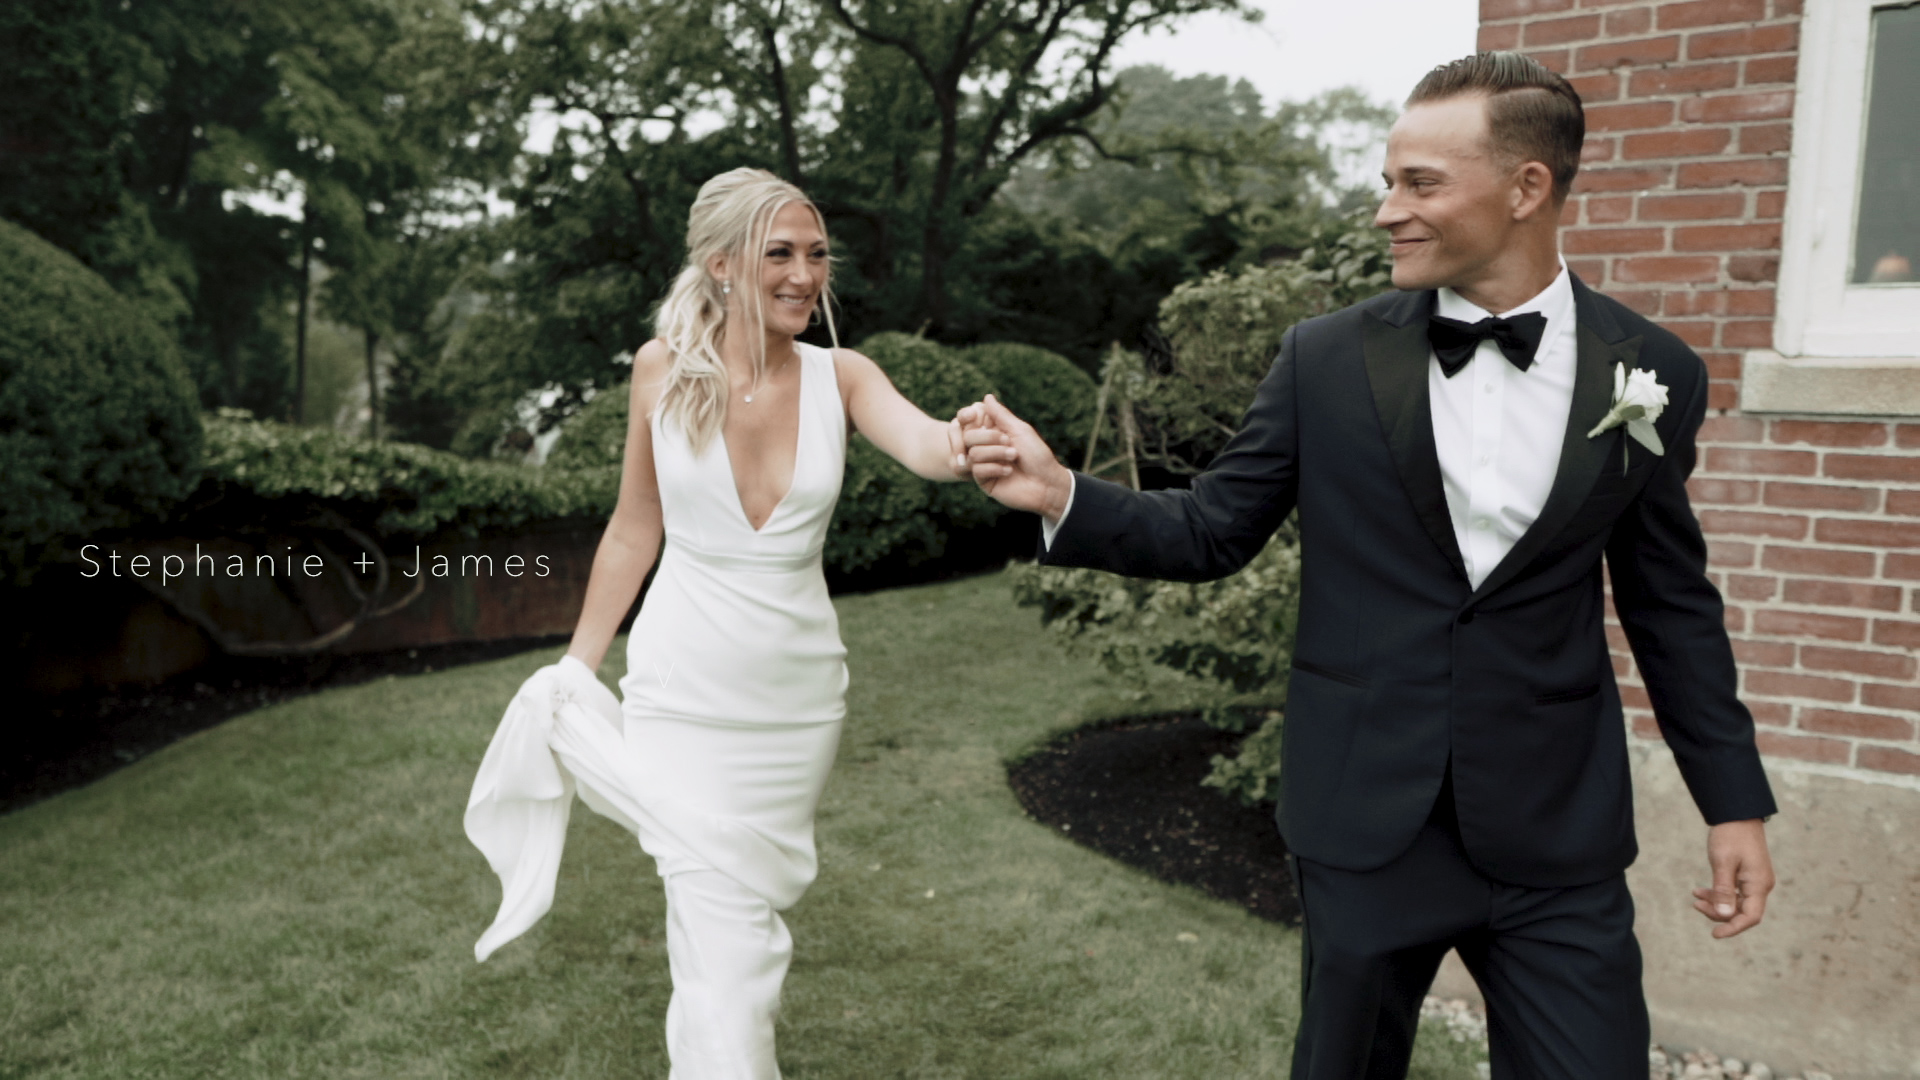 Stephanie + James | Beverly, Massachusetts | Misselwood Estate at Endicott College